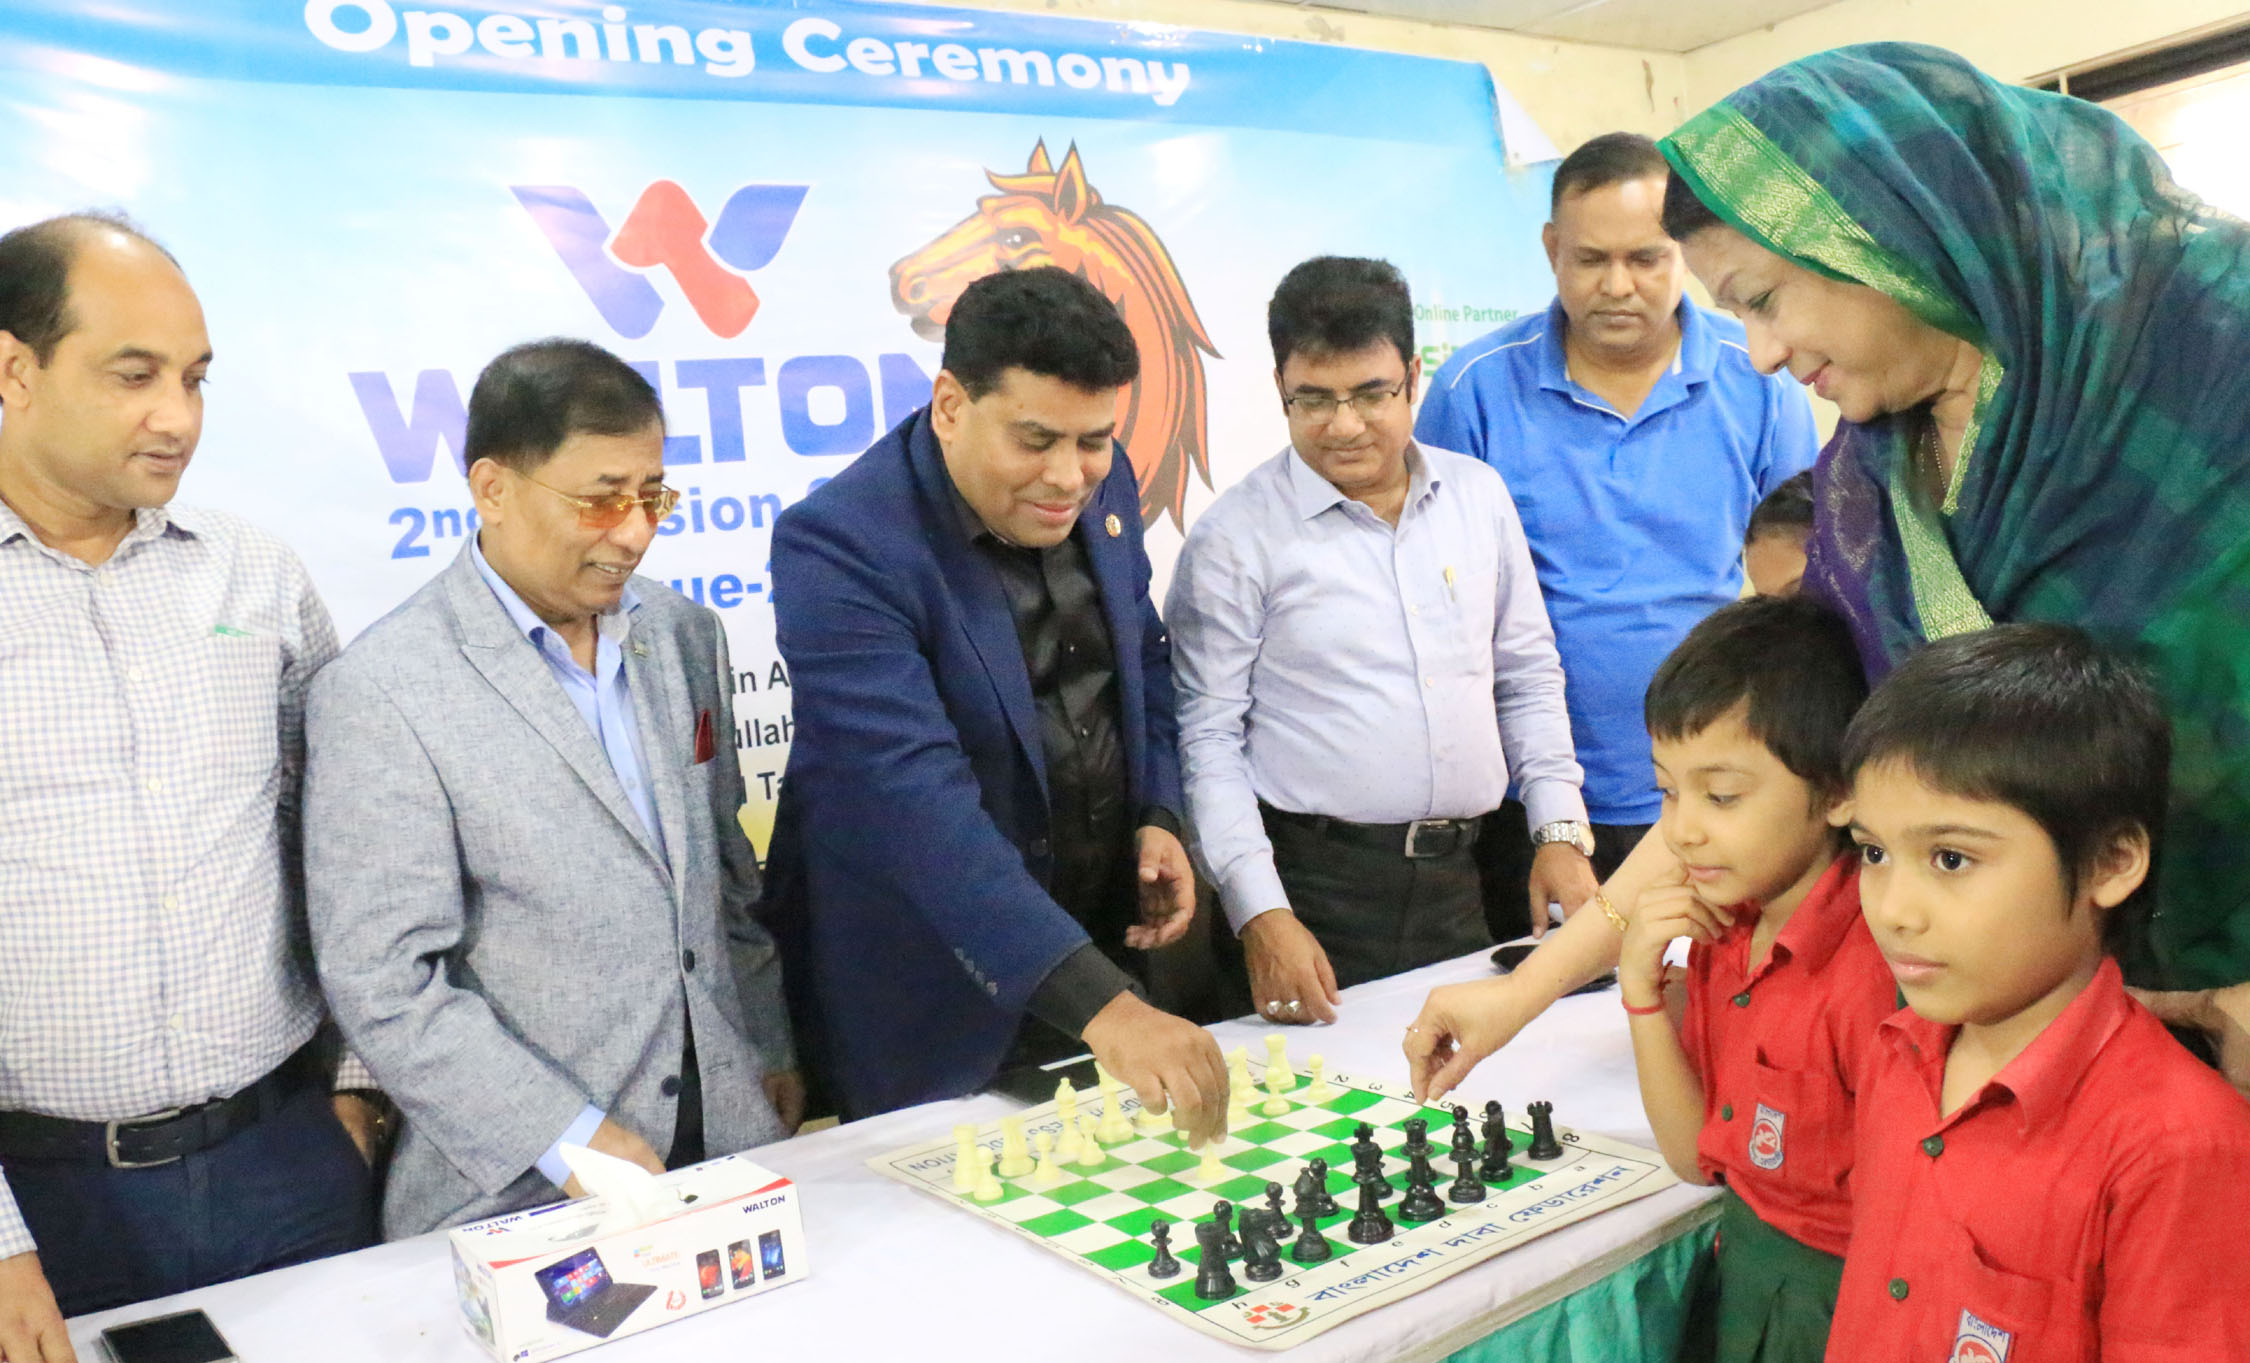 Operative Director (Head of Sports & Welfare Department) of Walton Group FM Iqbal Bin Anwar Dawn inaugurating the Walton Second Division Chess League at Bangladesh Chess Federation hall-room on Sunday.